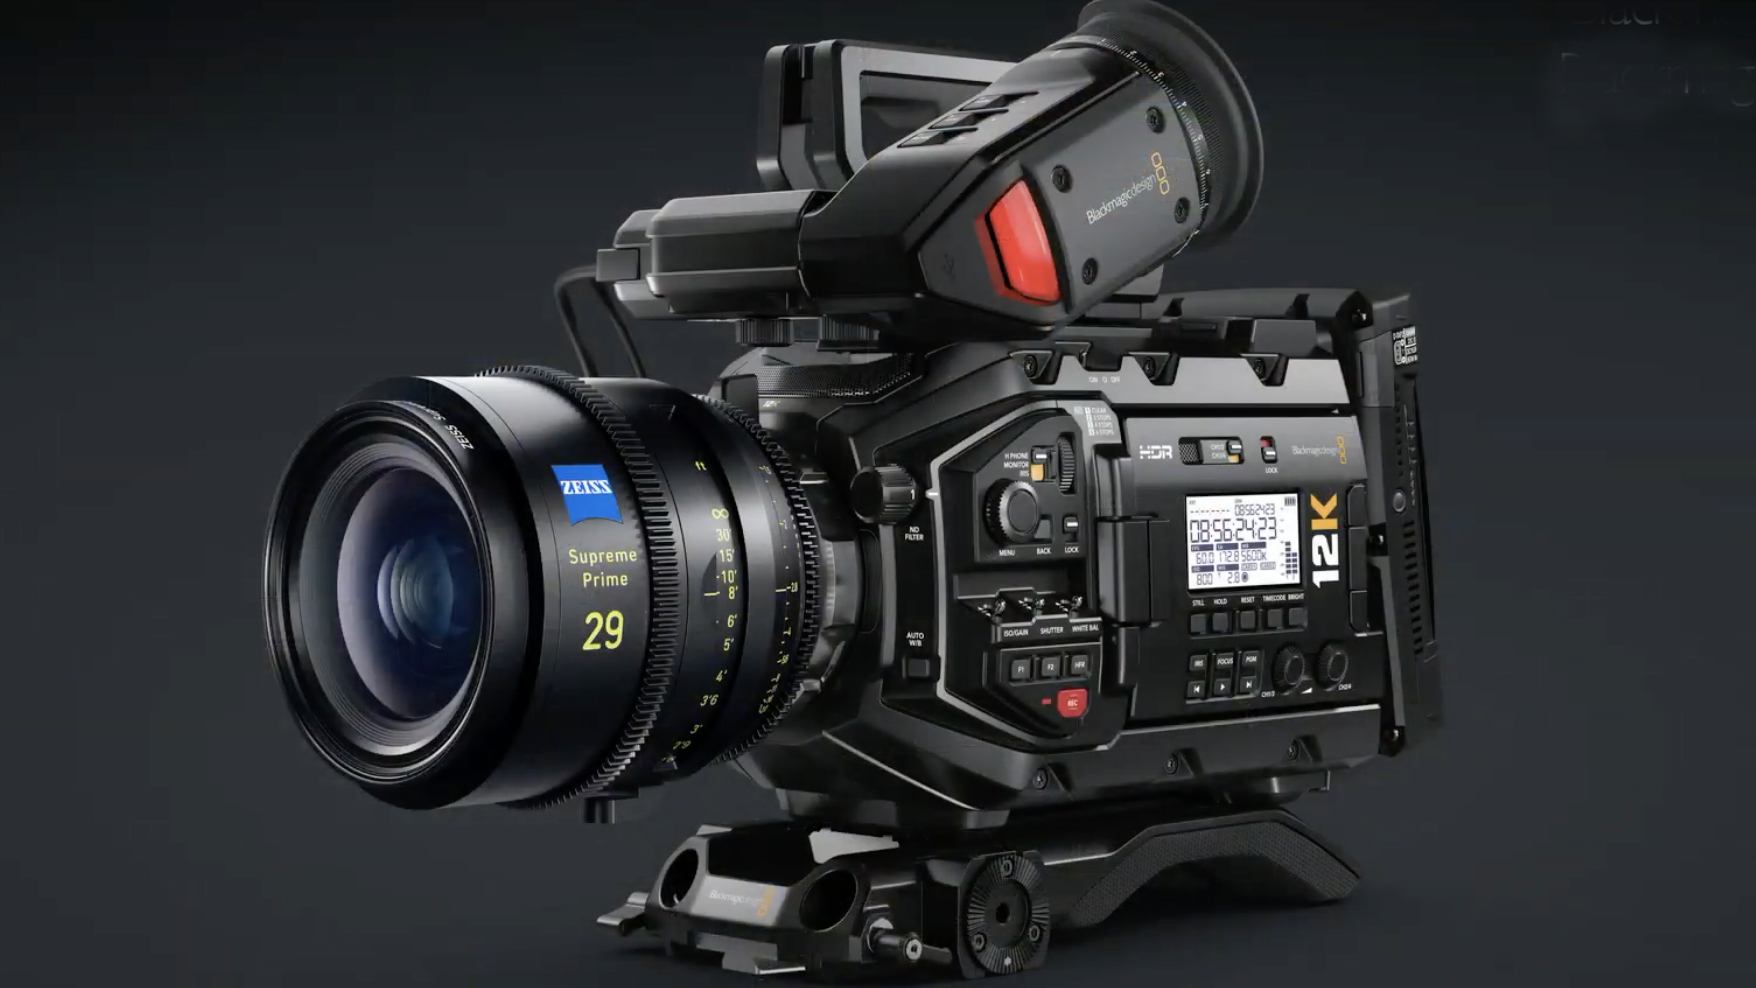 Wow Blackmagic 12k Camera Makes Stunning Entrance And The Price Is Amazing Too Digital Camera World